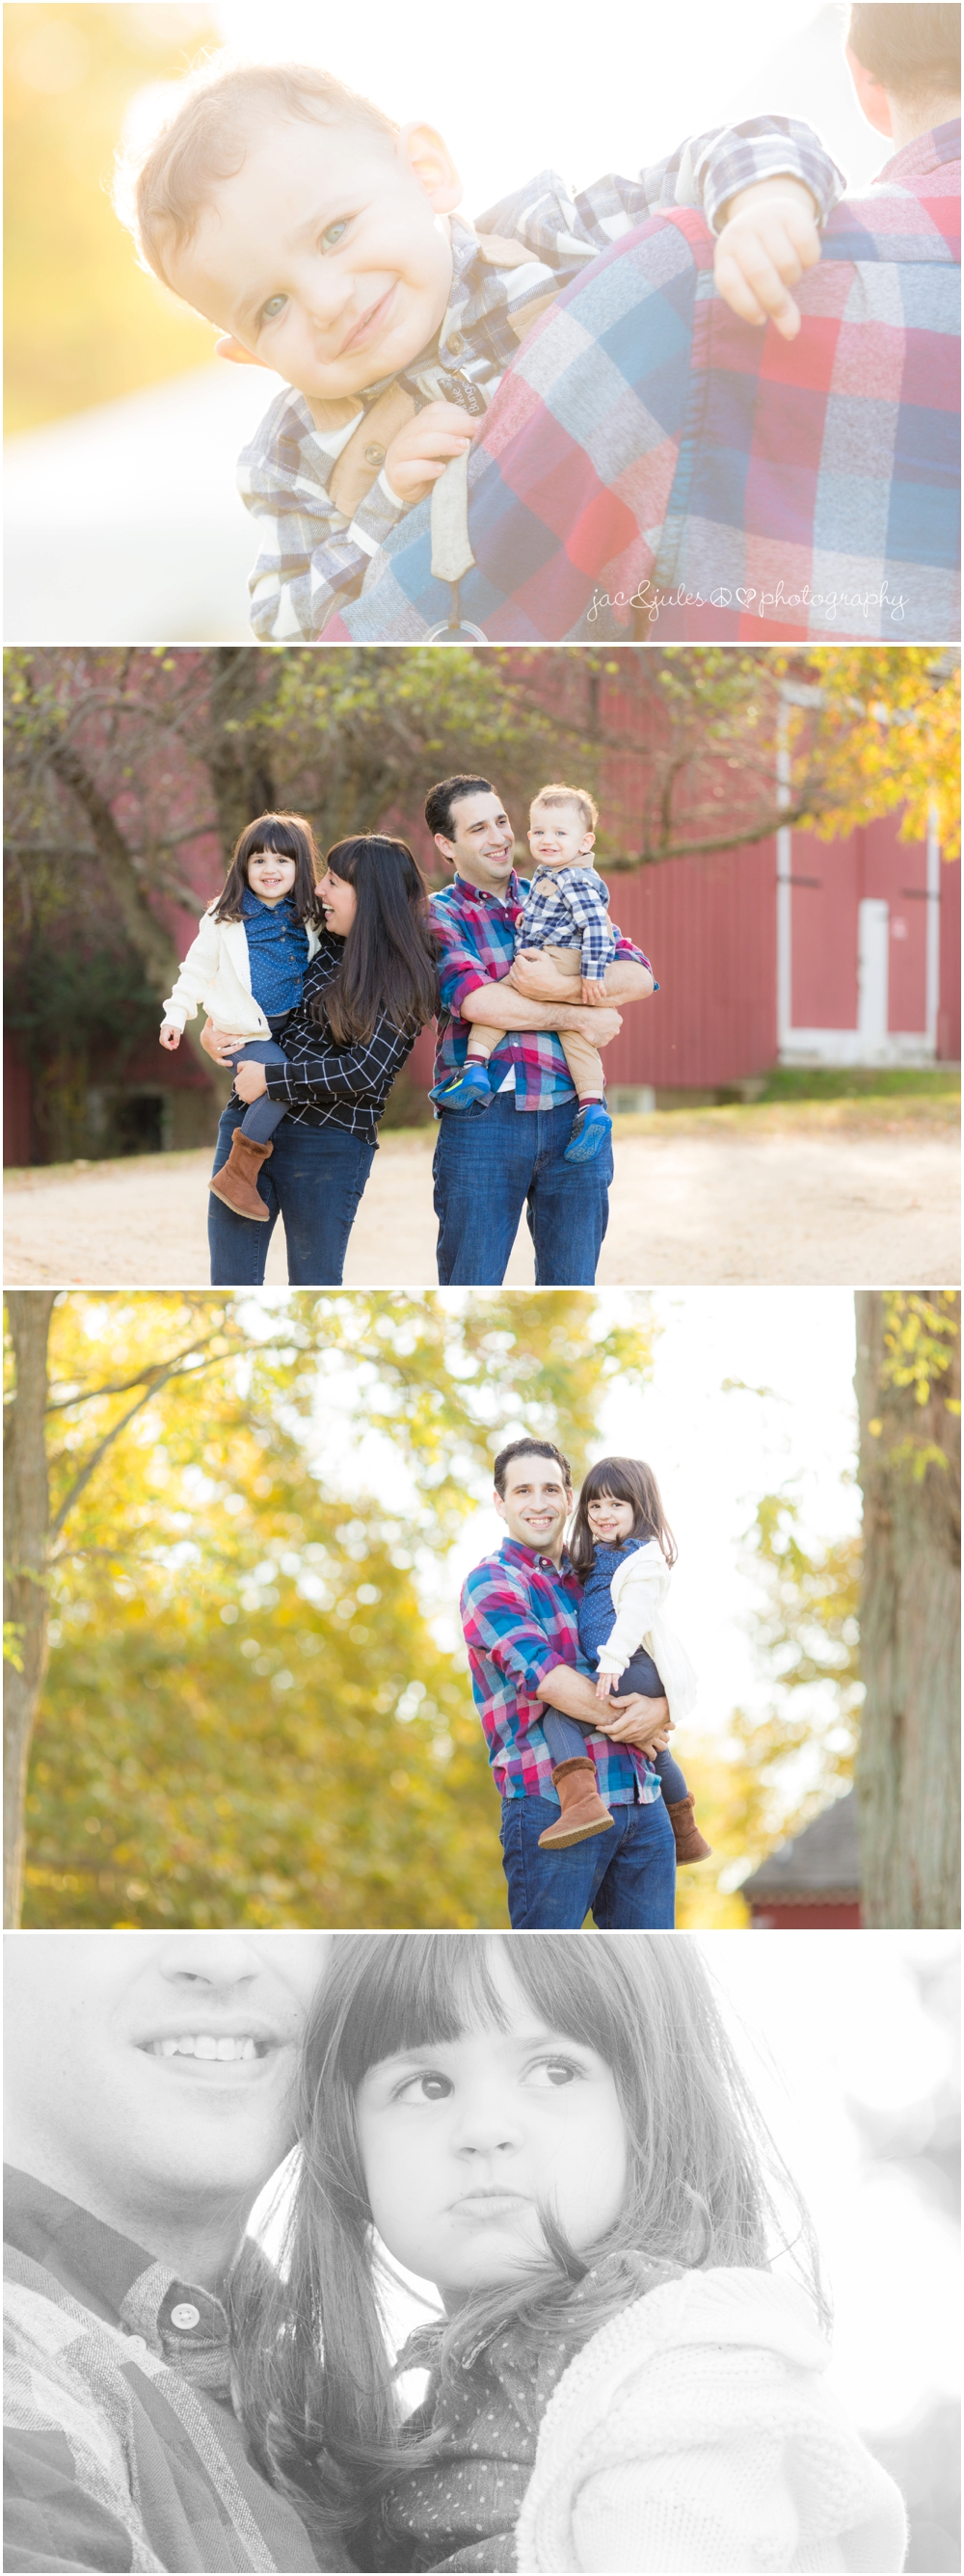 jacnjules photographs family at bayonet farm in holmdel nj